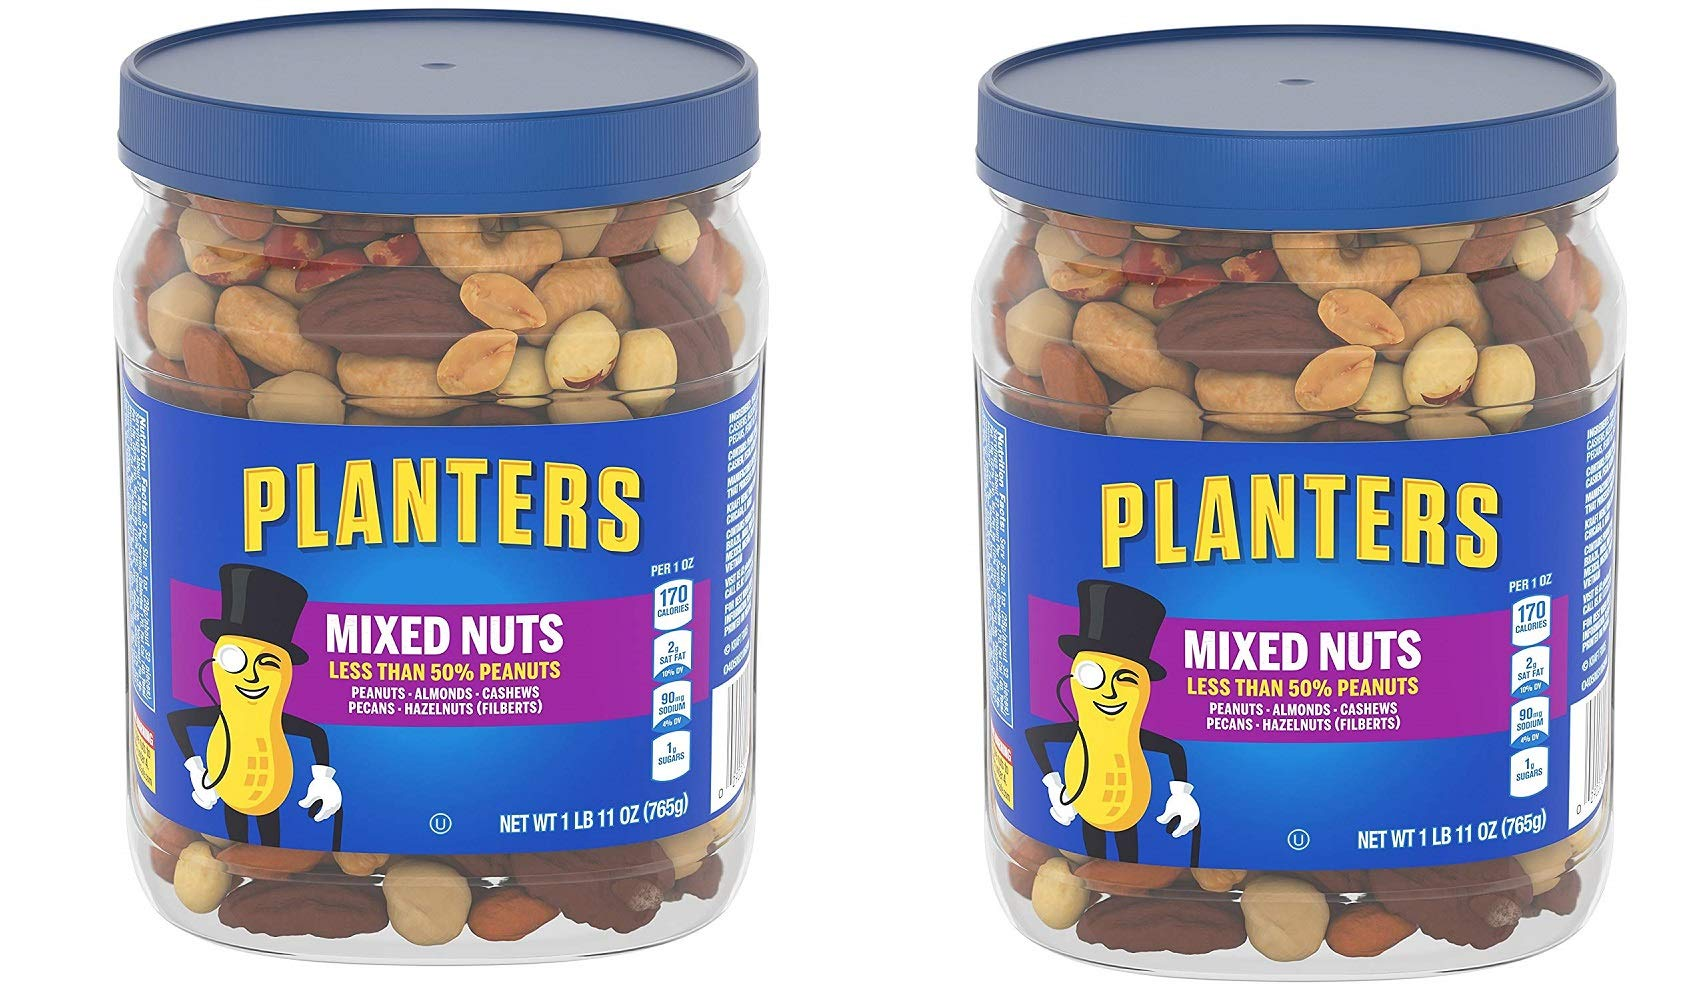 Planters Mixed Nuts, Regular Mixed Nuts, 2 Tubs